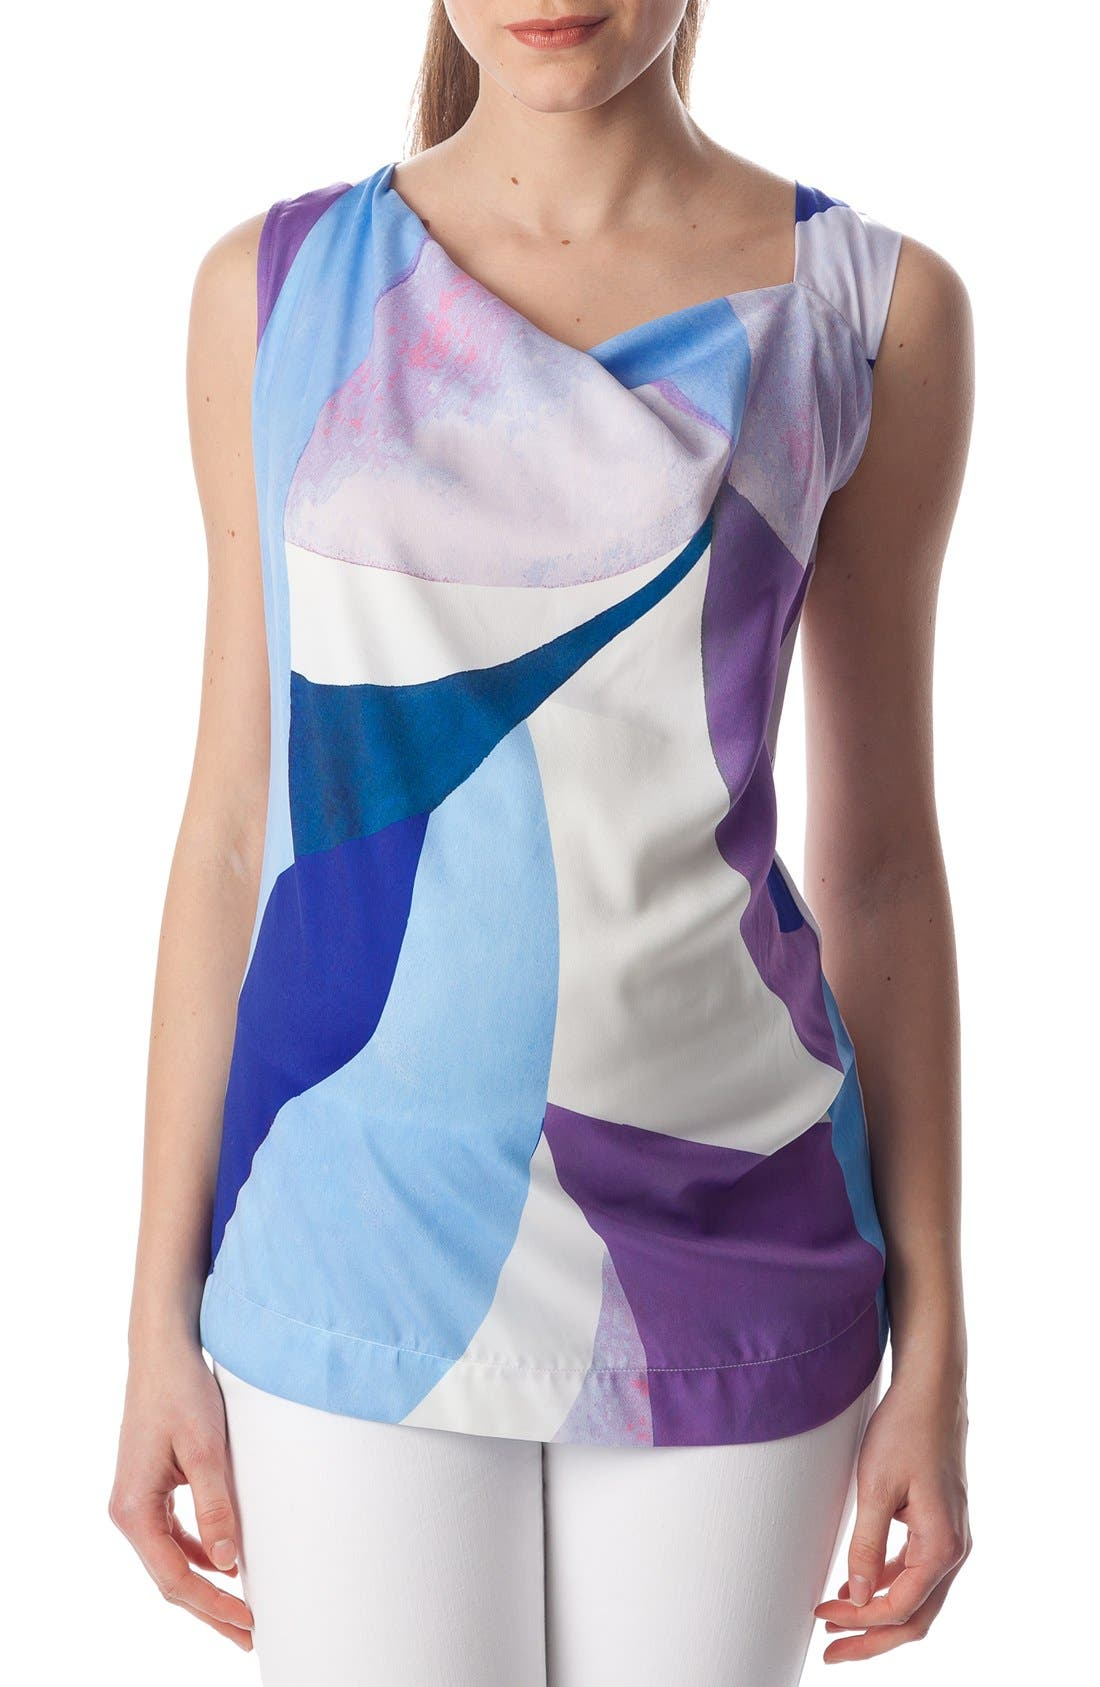 'Fialka' Graphic Maternity Top,                             Main thumbnail 1, color,                             Sky Surf/ White Jersey